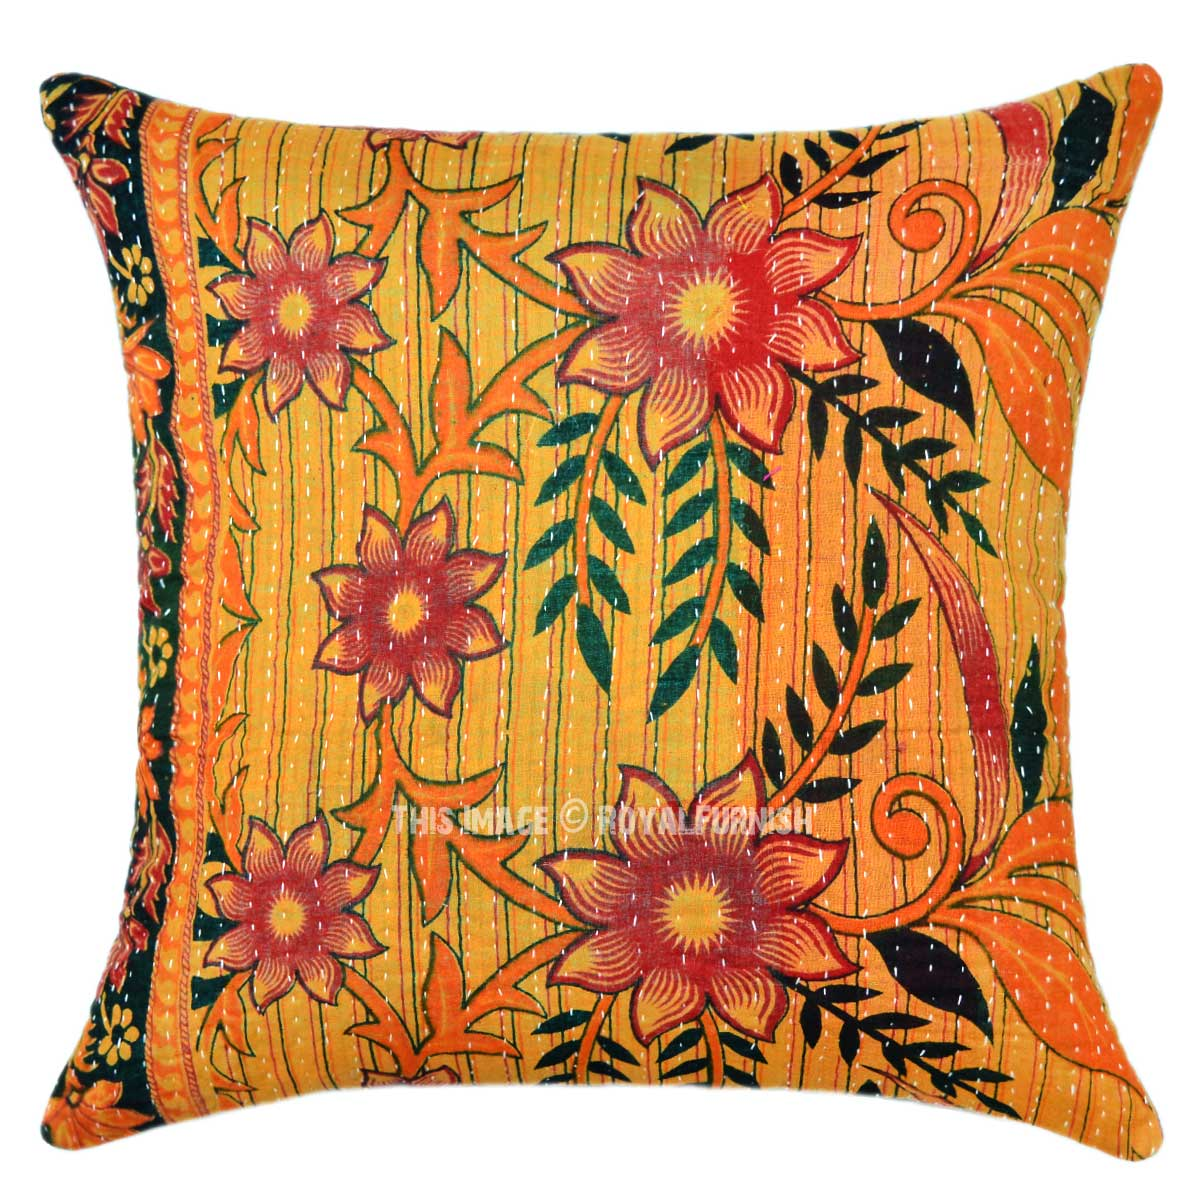 Decorative Pillows Vintage : Orange Multi Flower Plant Decorative Vintage Kantha Throw Pillow Sham - RoyalFurnish.com